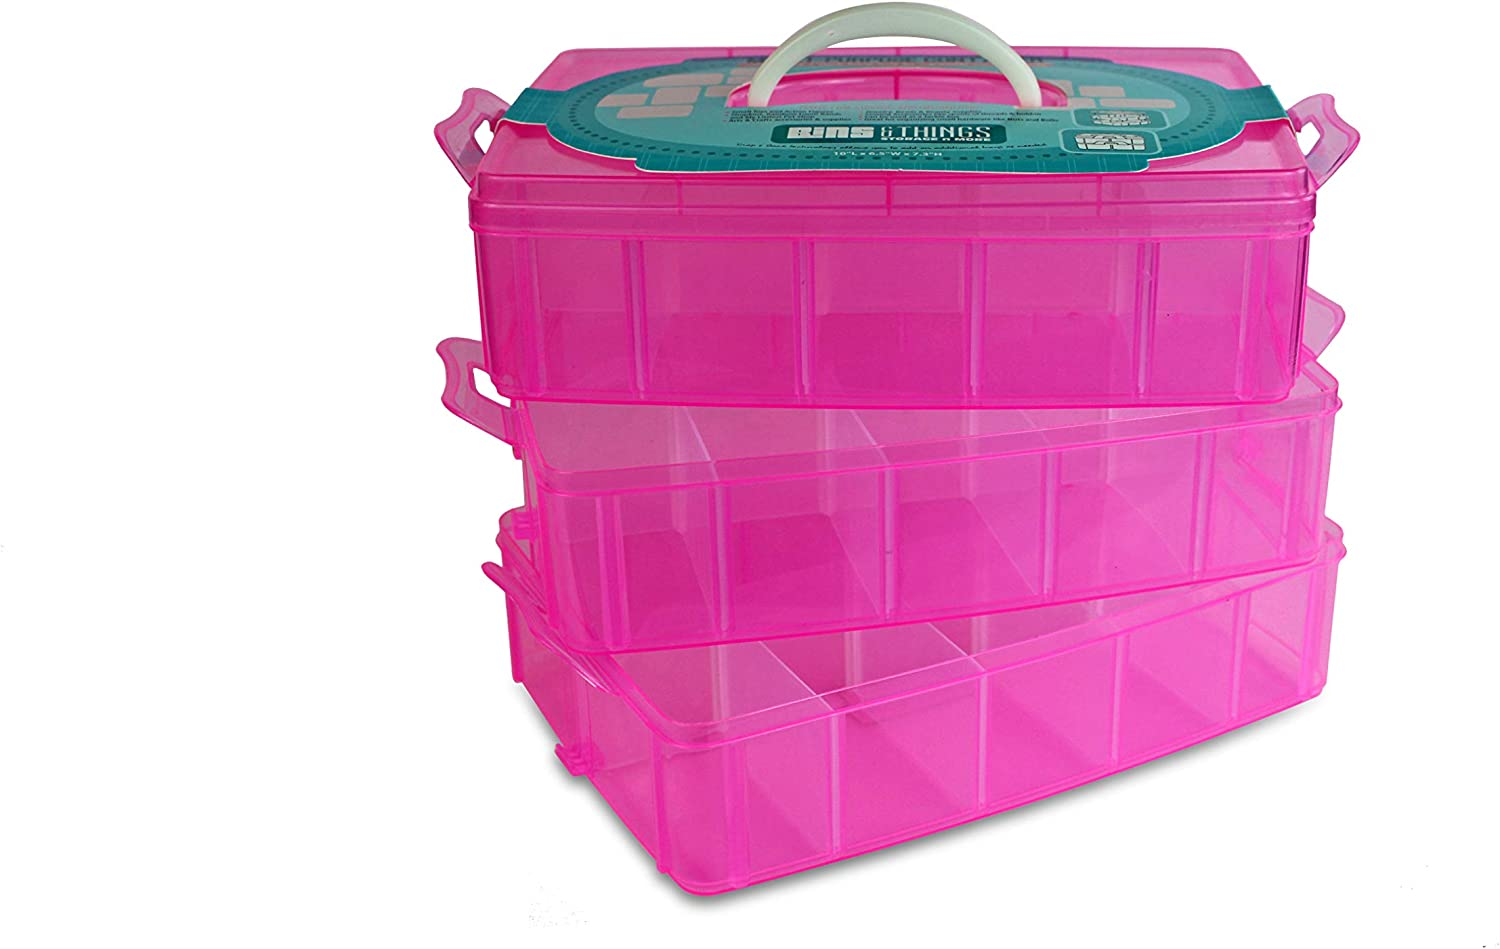 Pink 4 Tier Bins /& Things Storage Container with 30 Adjustable Compartments for Storing /& Organizing Sewing Embroidery Threads